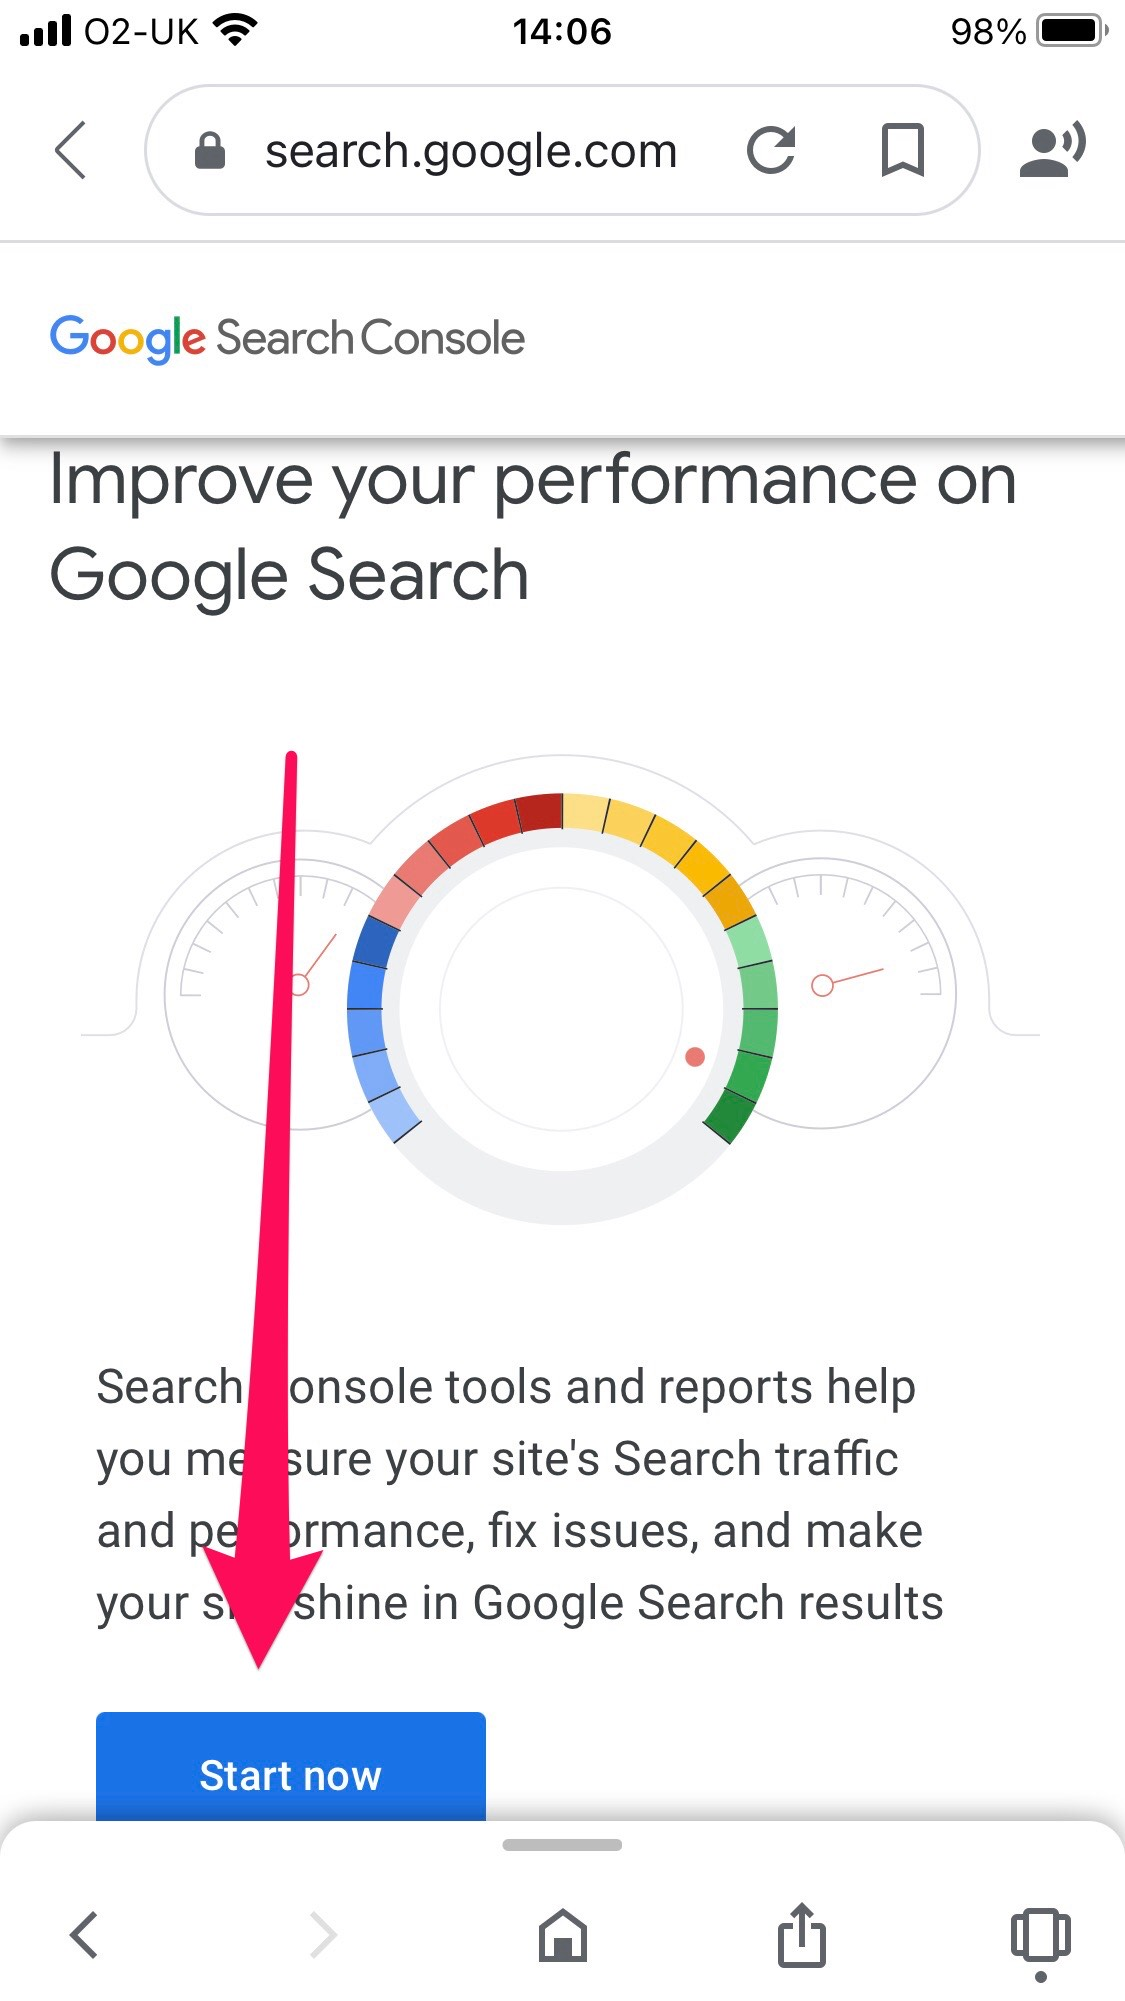 photo shows a screenshot of Google Search Console home page